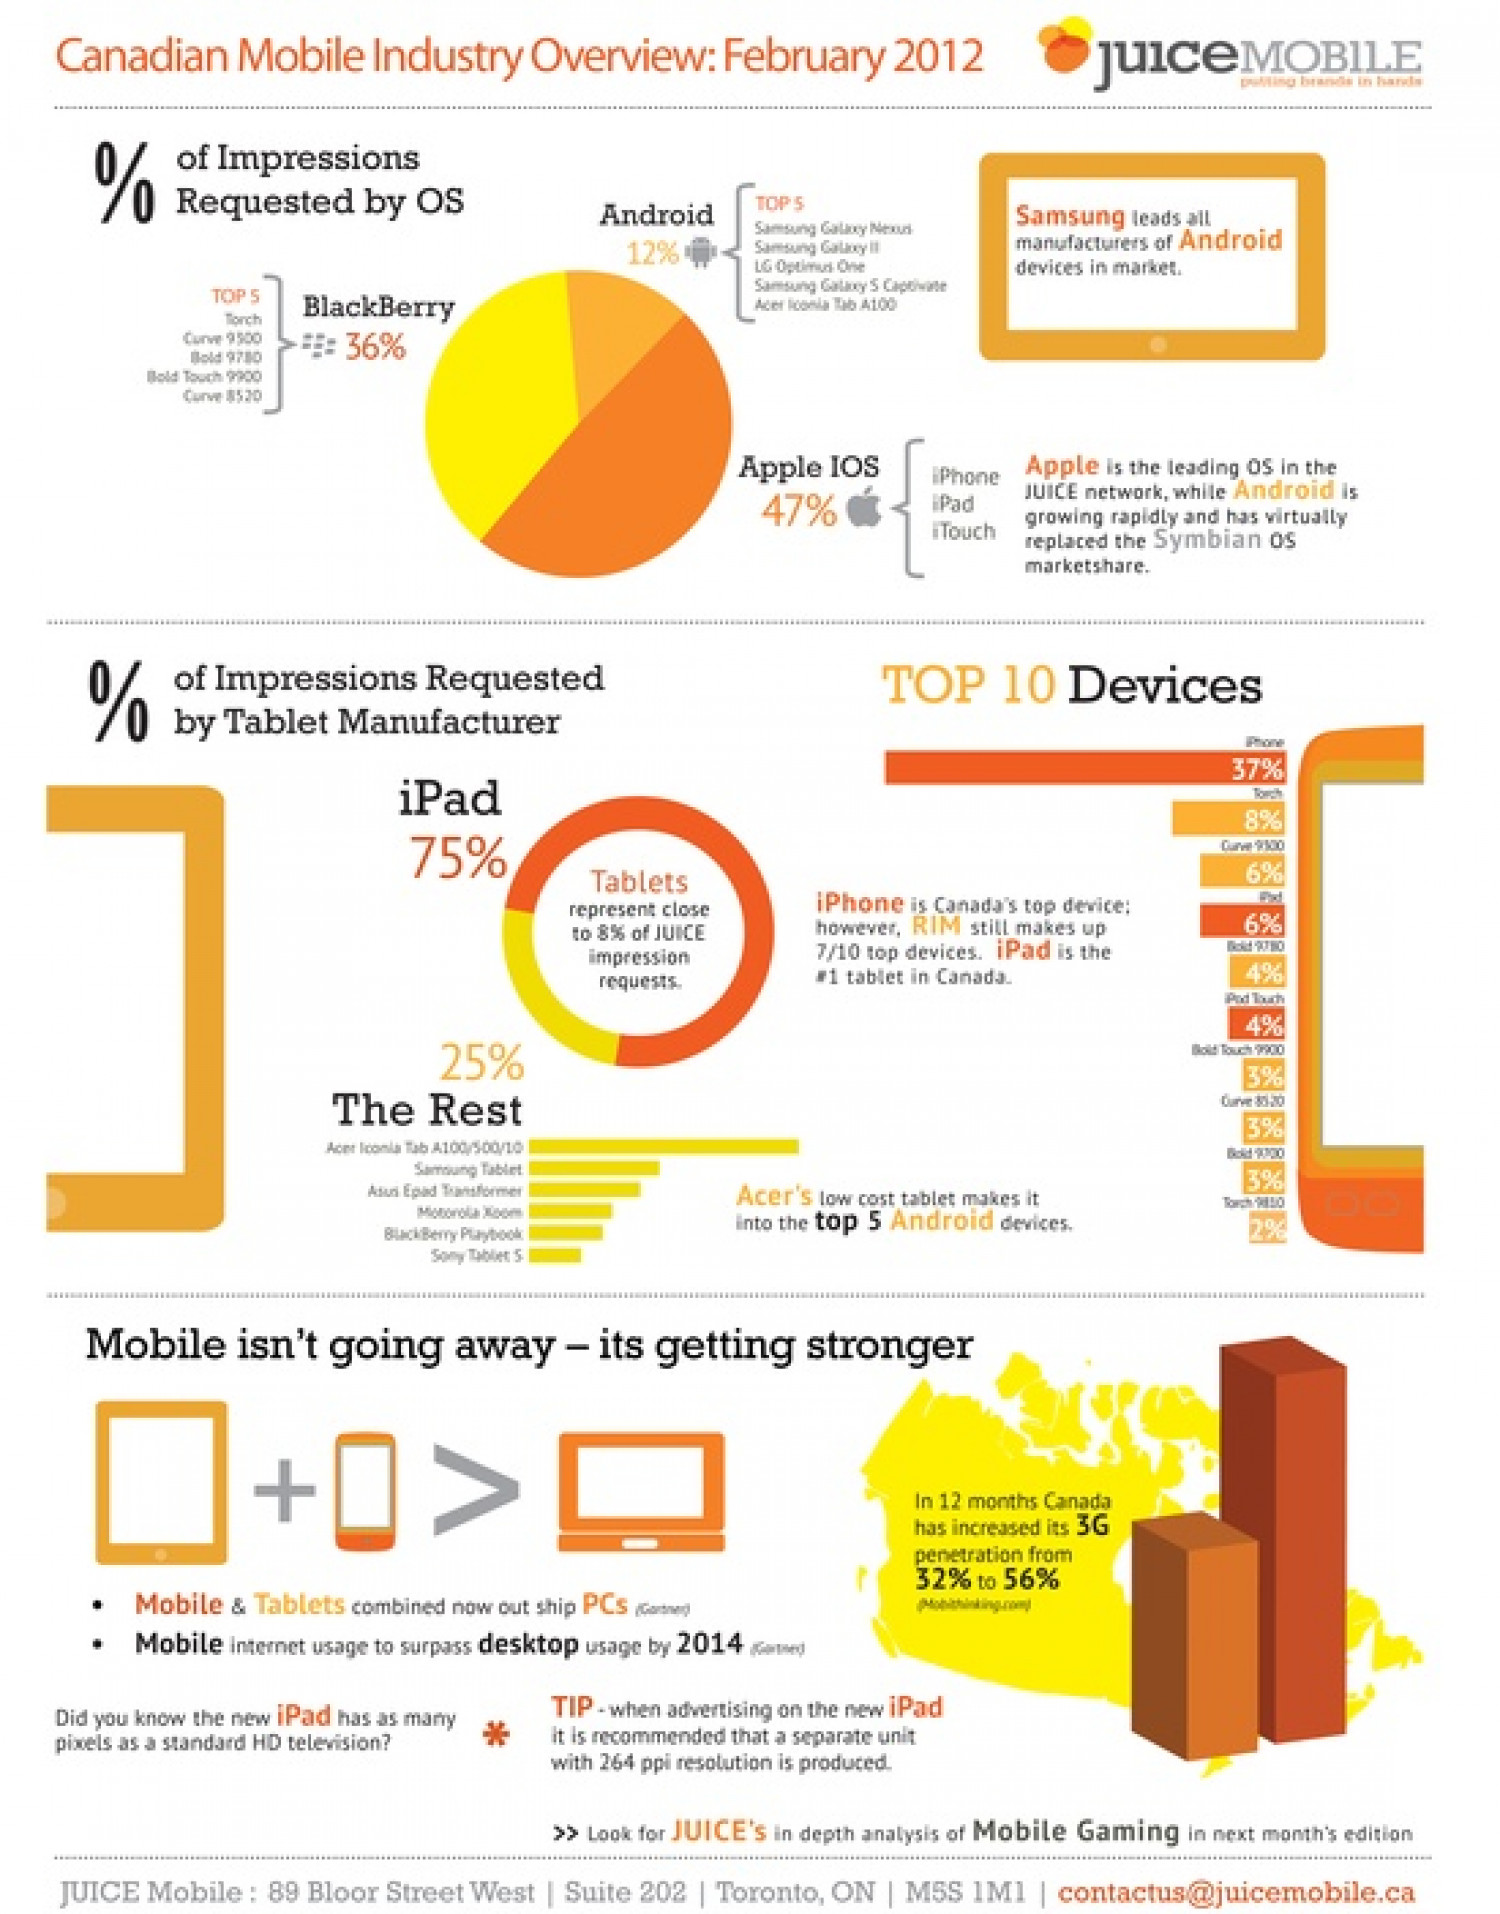 Canadian Mobile Industry Overview: February 2012 Infographic